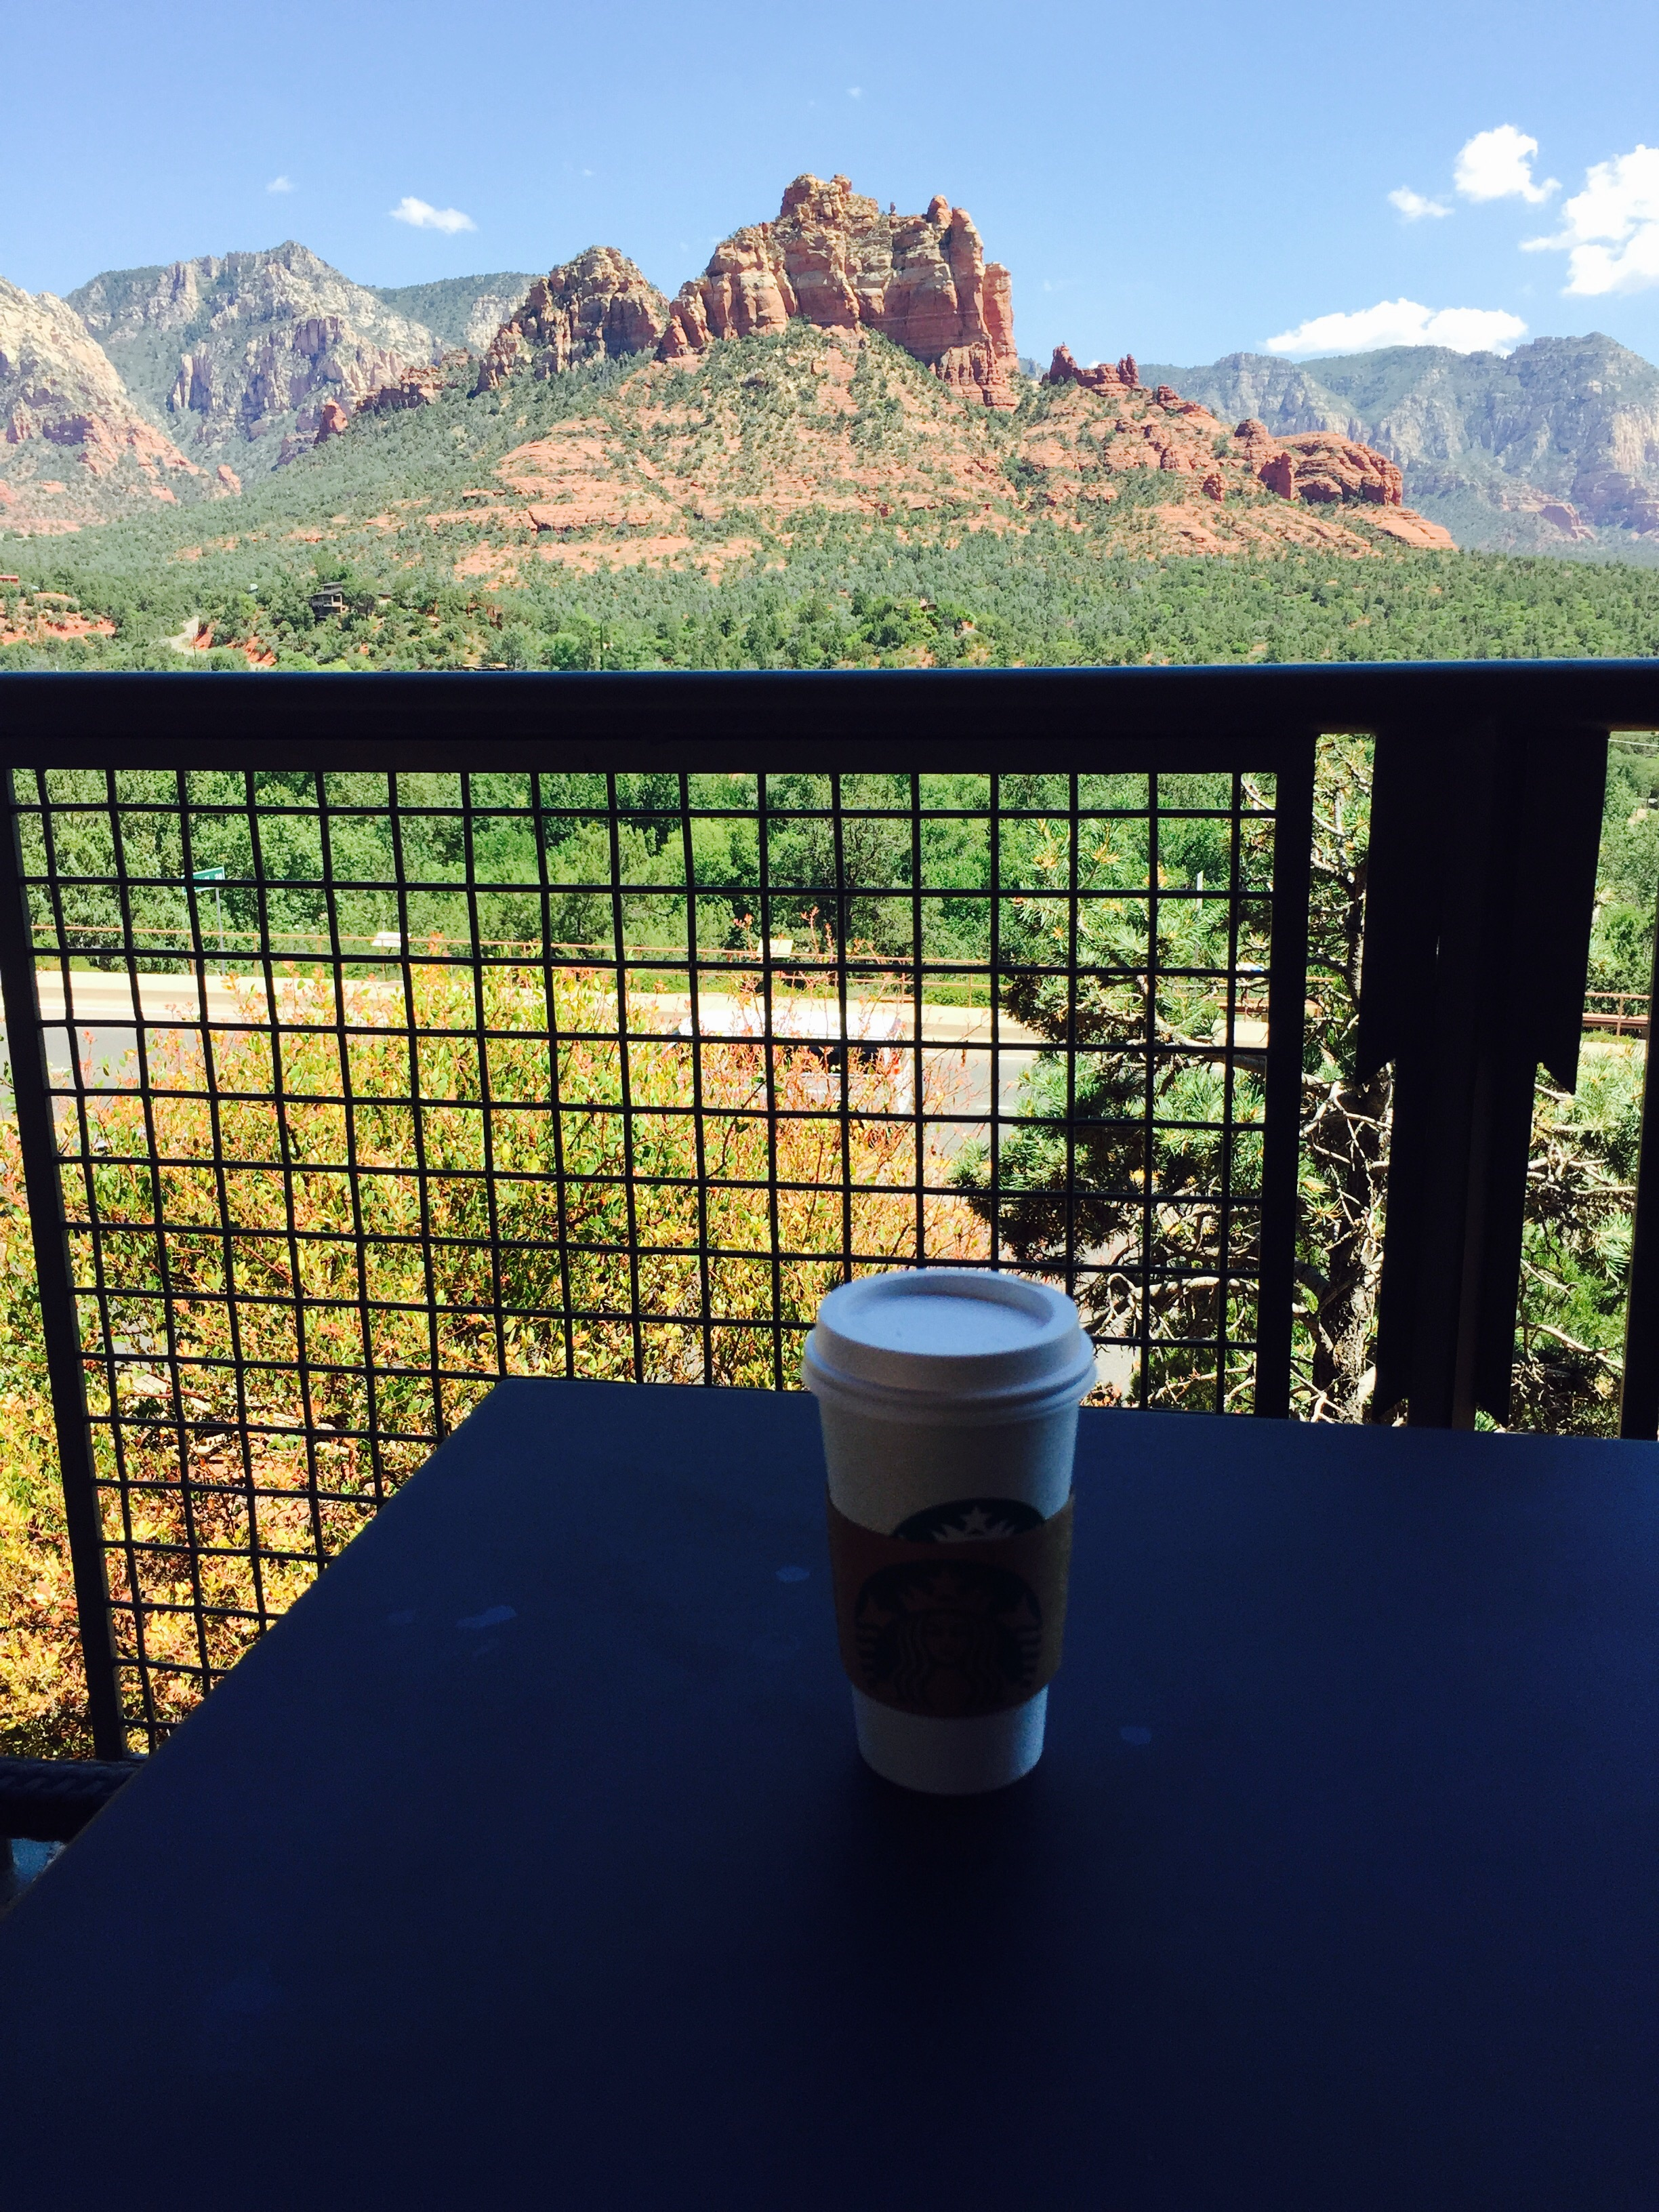 Starbucks In Sedona…Day 17